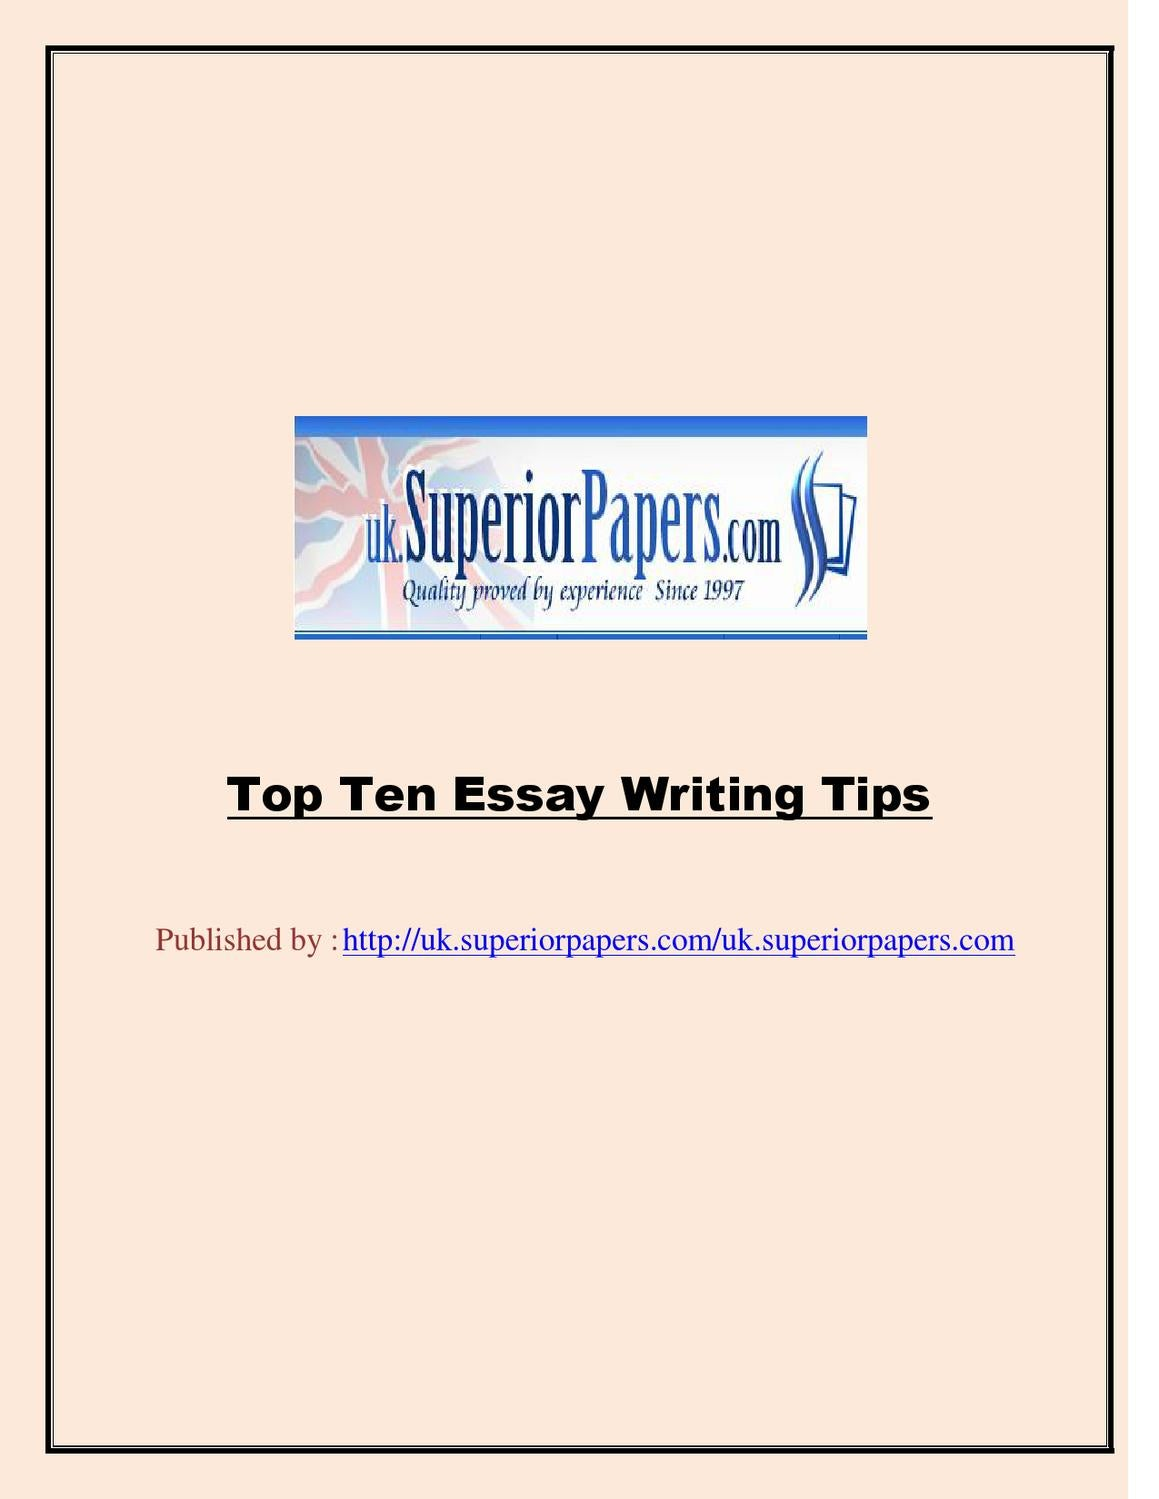 essay writing service review floristofjakarta com while their friends essay writing service review keep scratching their heads wondering what they are doing wrong whats their secret